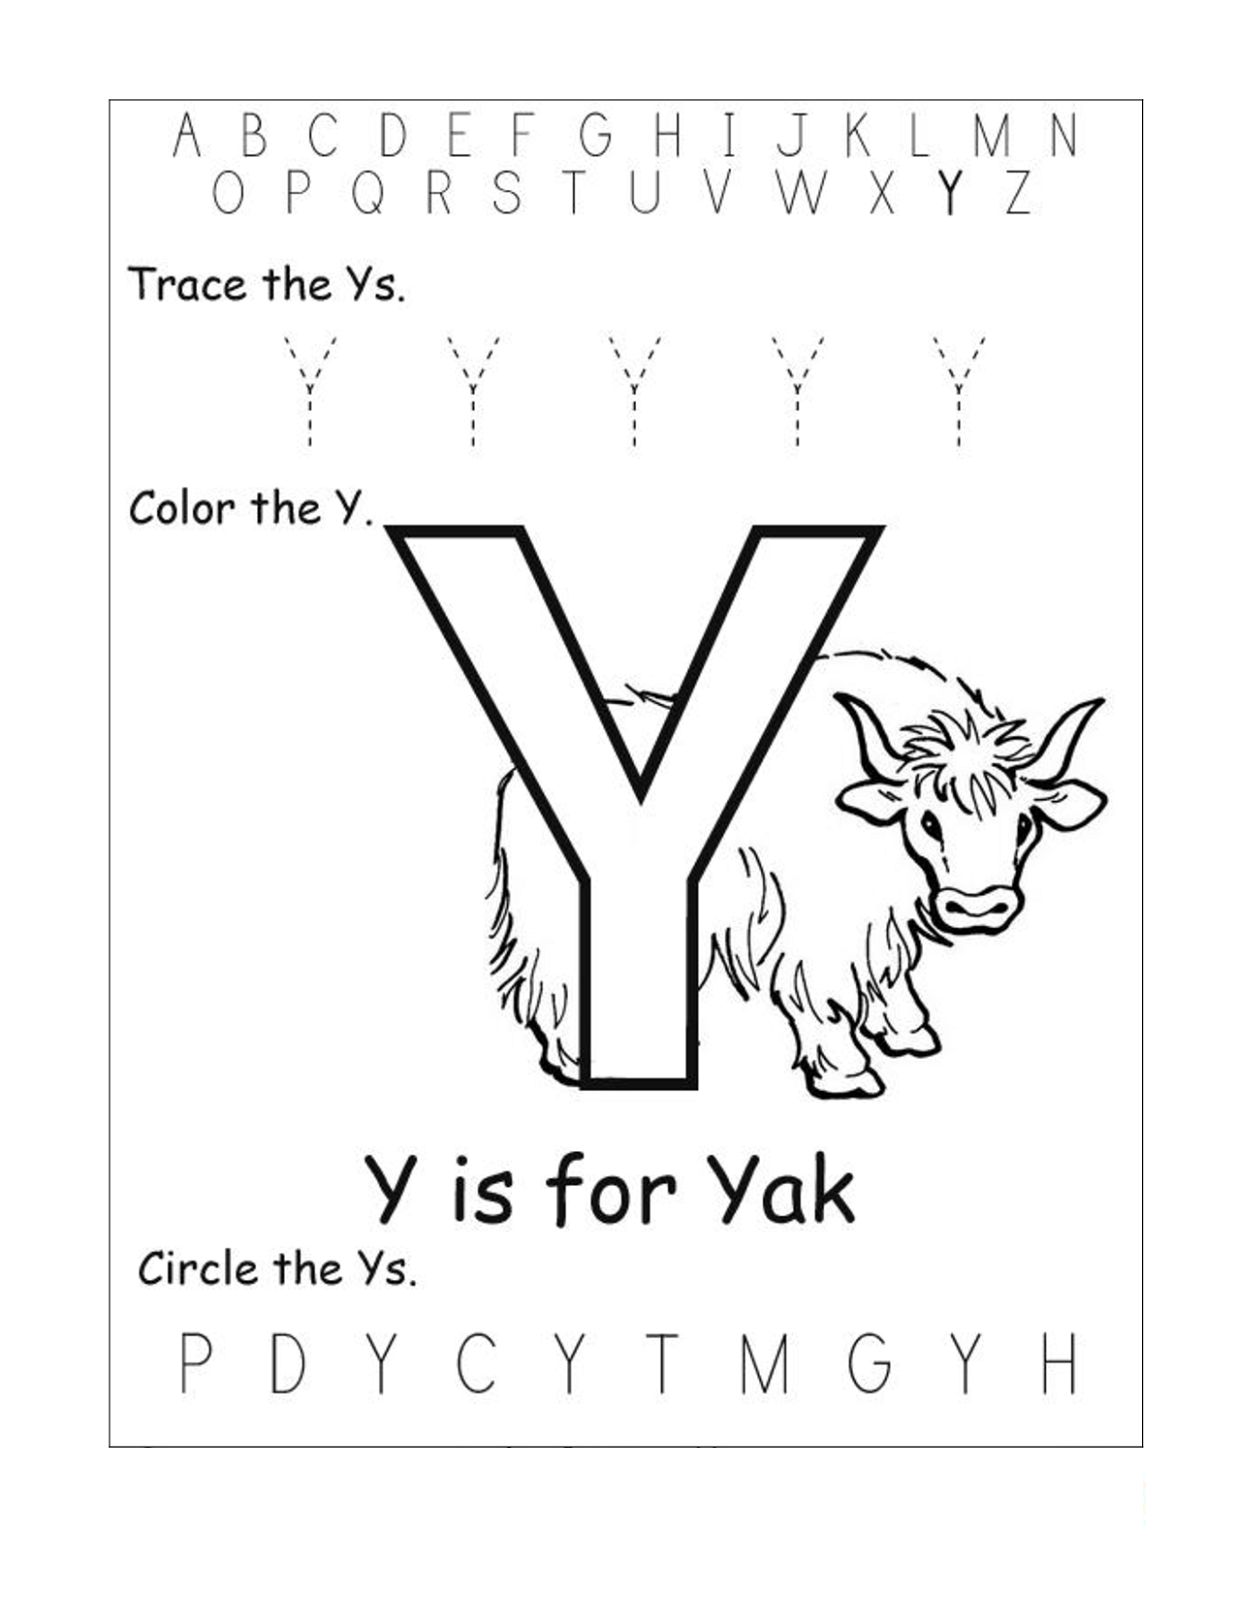 worksheet Letter Y Worksheet letter y worksheets to print activity shelter worksheet yak